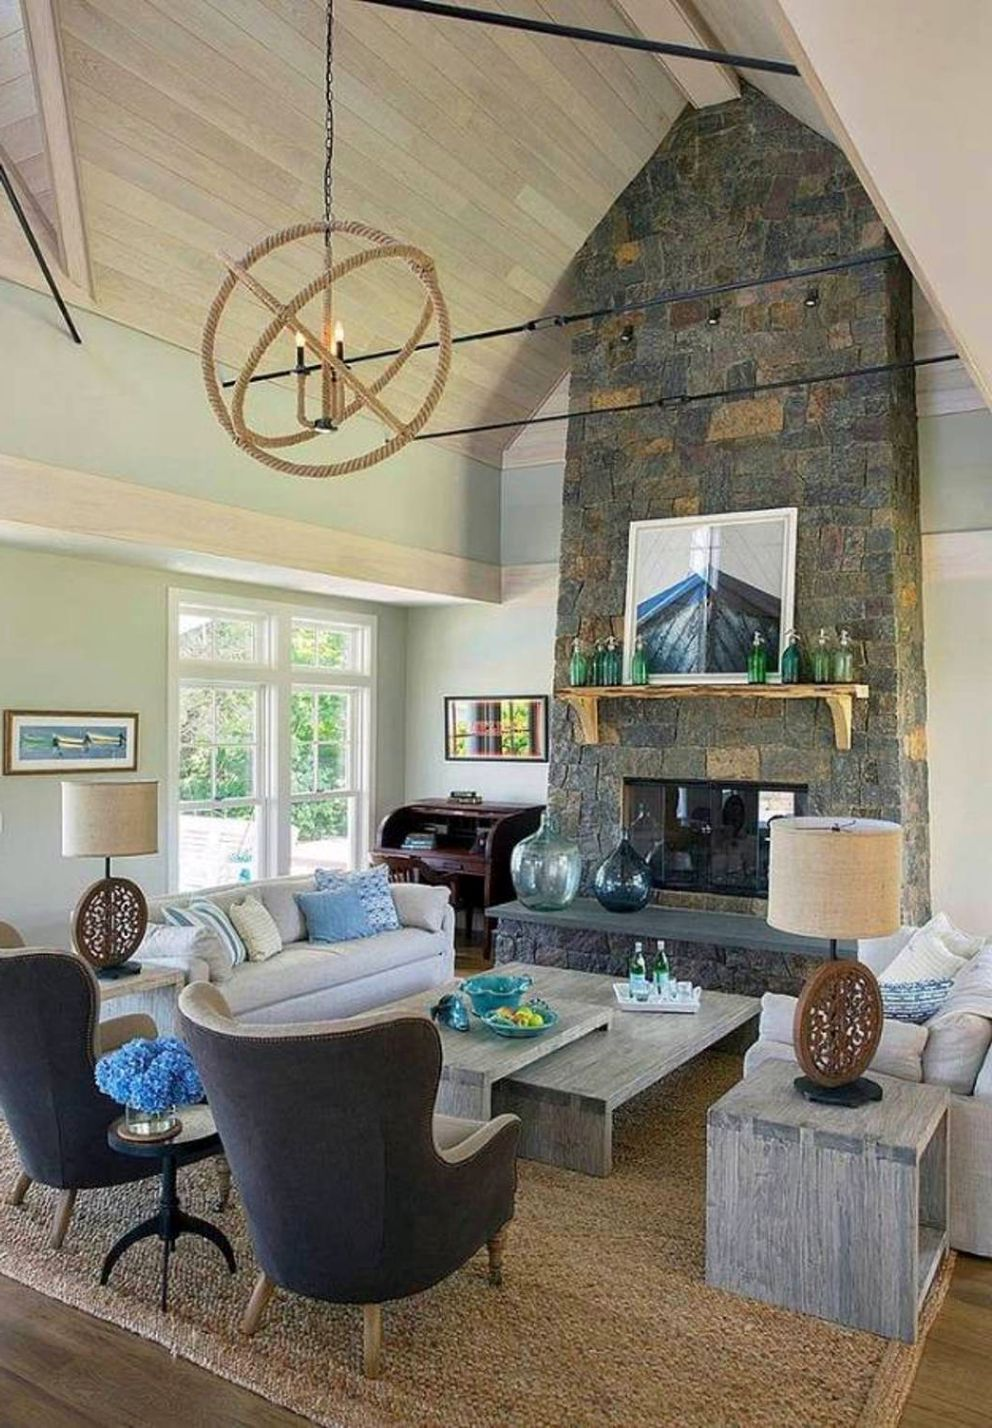 16 most fabulous vaulted ceiling decorating ideas for Create living room layout